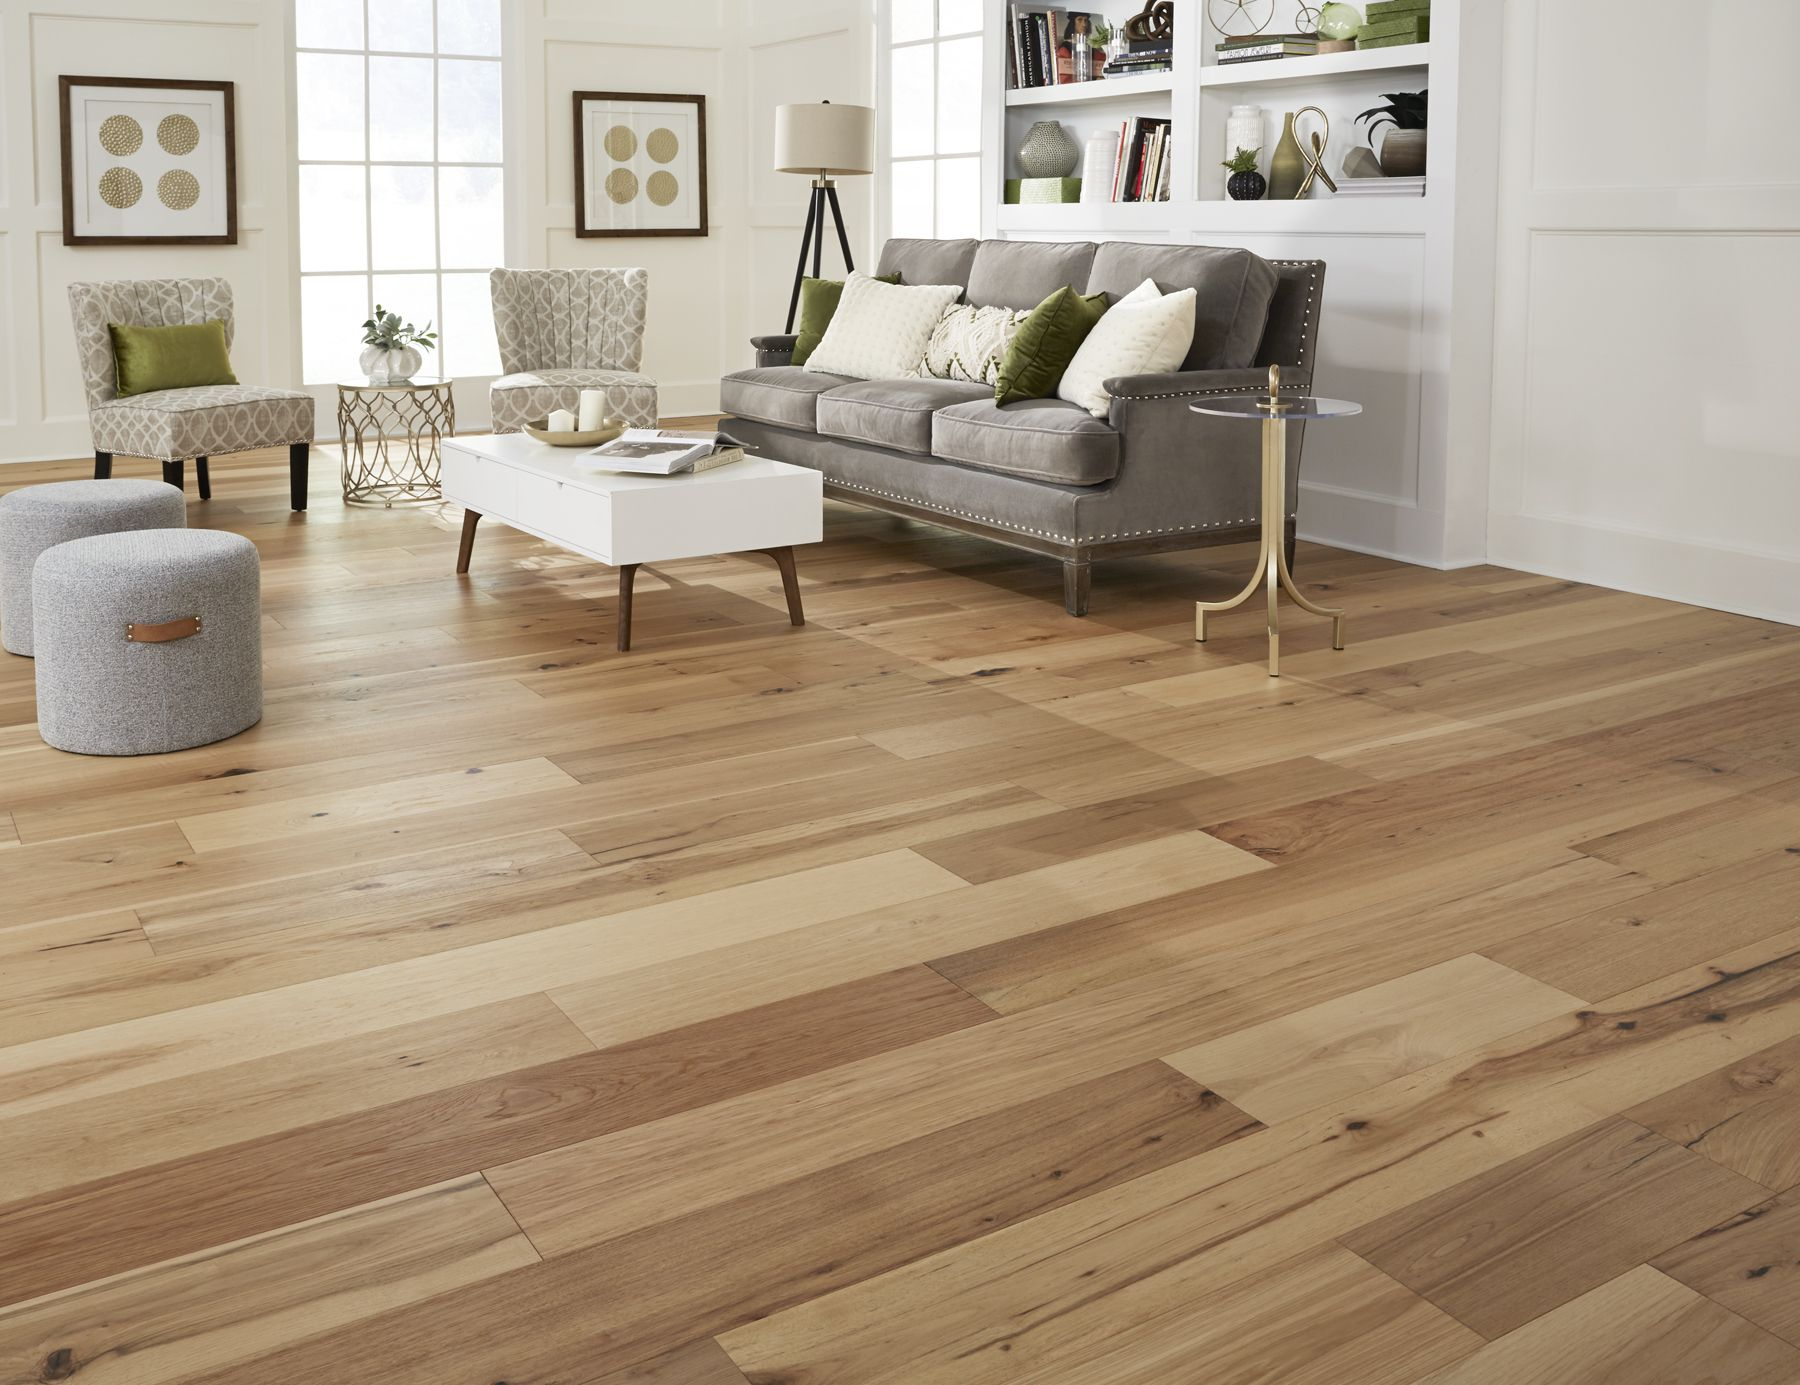 Virginia Mill Works Engineered 9 16 X 7 1 2 Rustic Hickory E Engineered Hardwood Flooring Wide Plank Hardwood Floors Engineered Hardwood Flooring Wide Plank